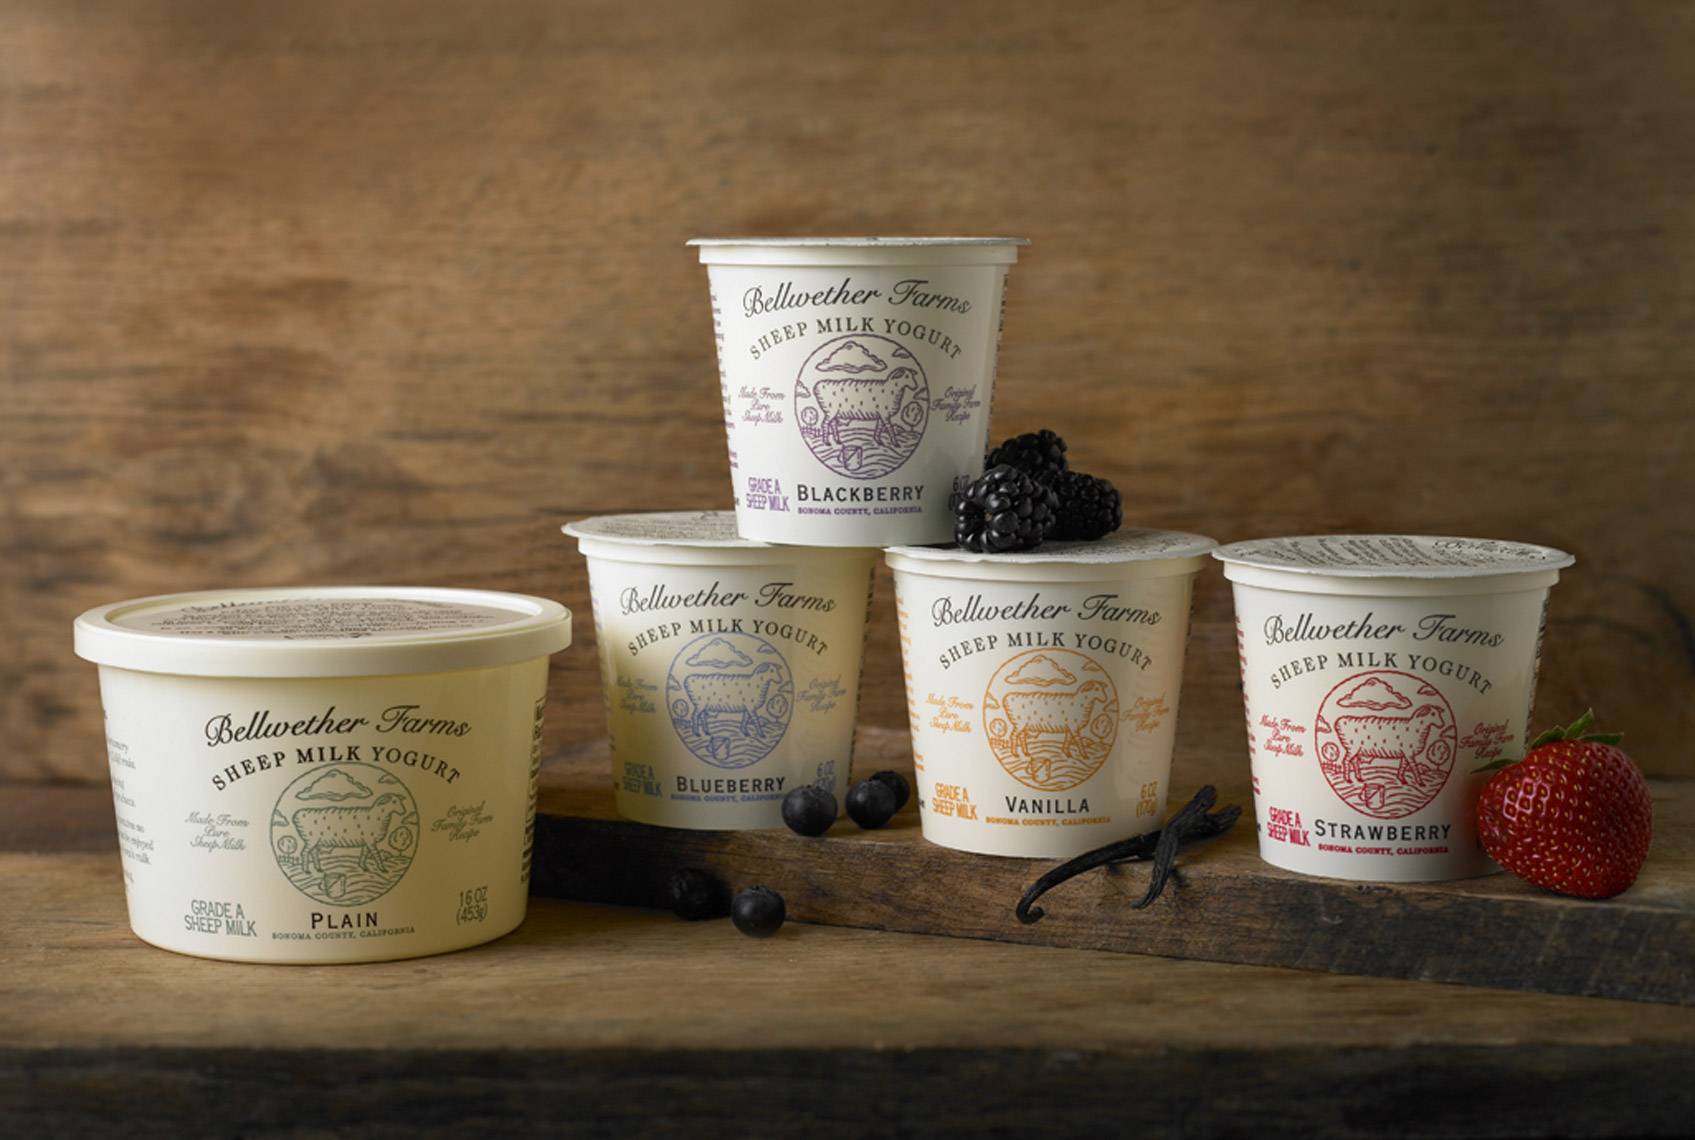 AlanCampbellPhotography, Bellwether Farms Yogurts family shot